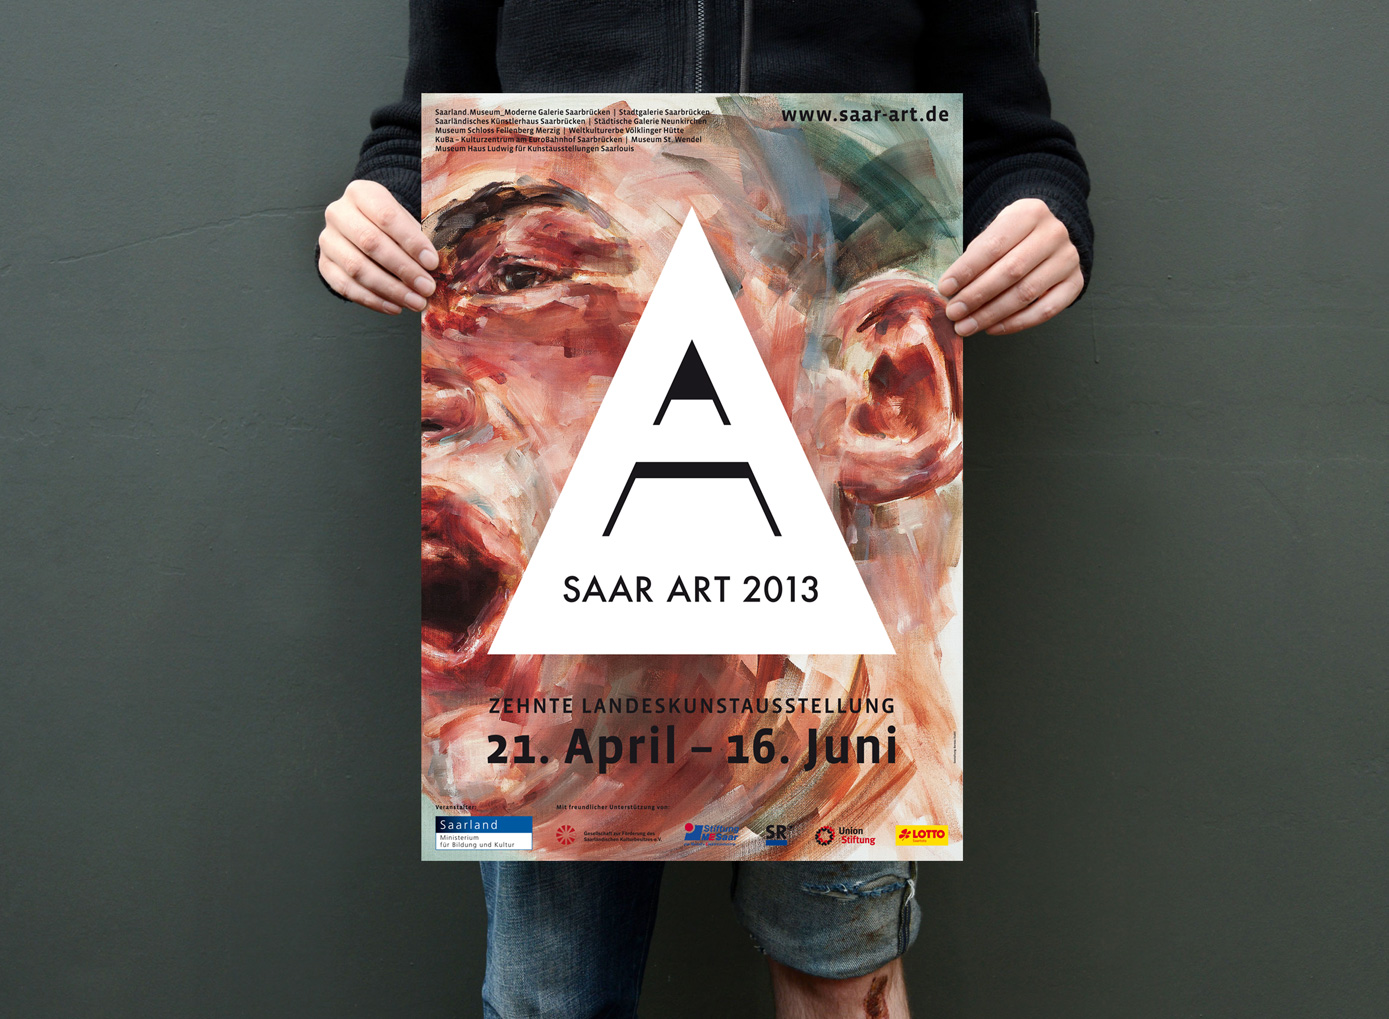 Saarart corporate identity county art exhibition bureau